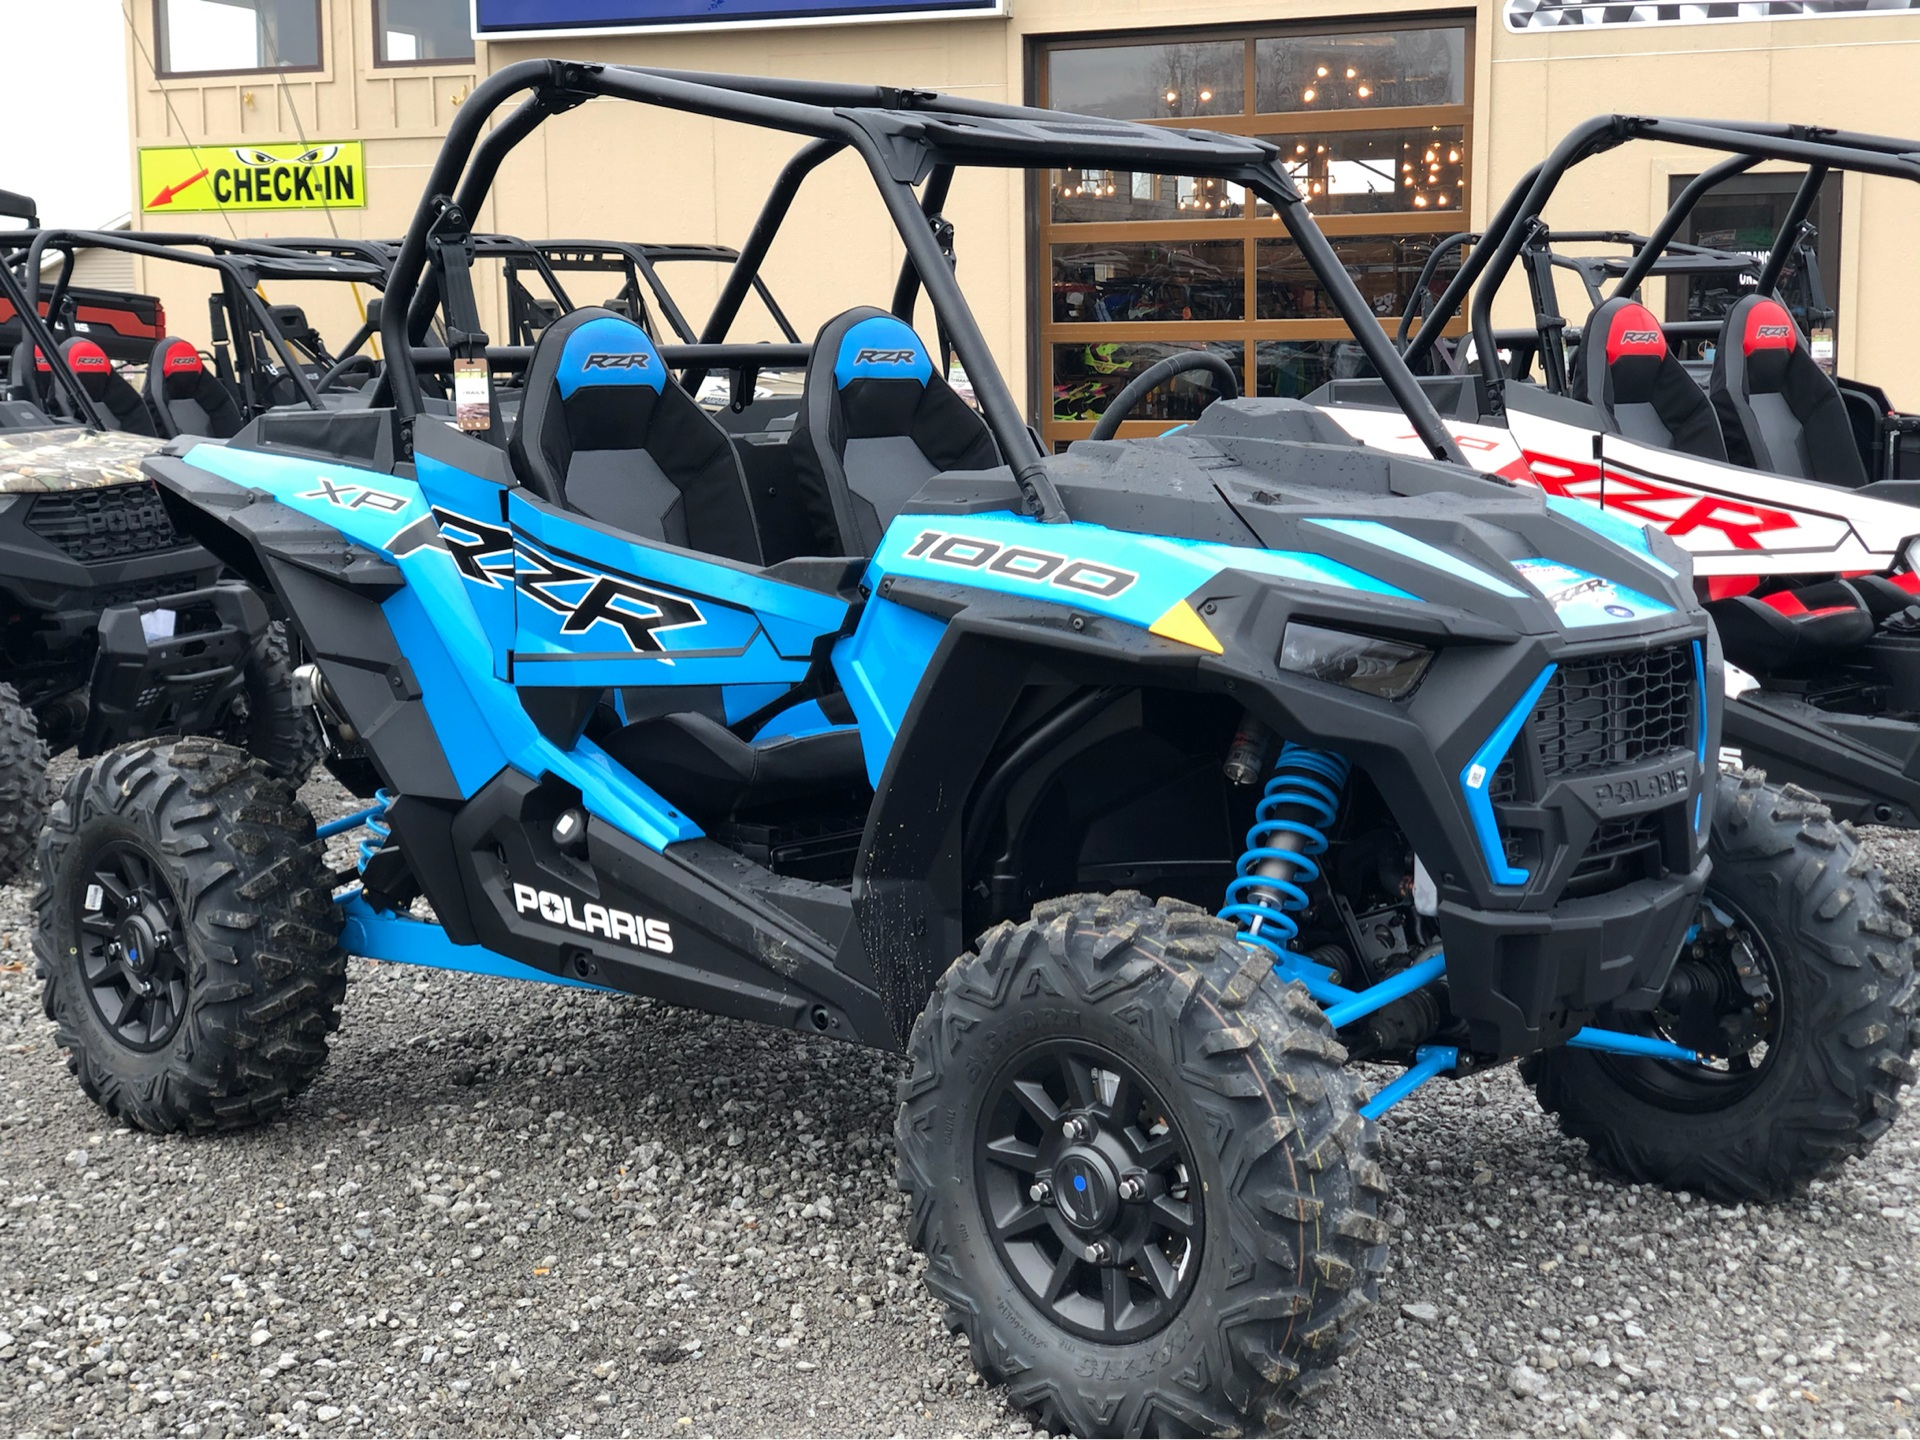 2020 Polaris RZR XP 1000 in Attica, Indiana - Photo 5